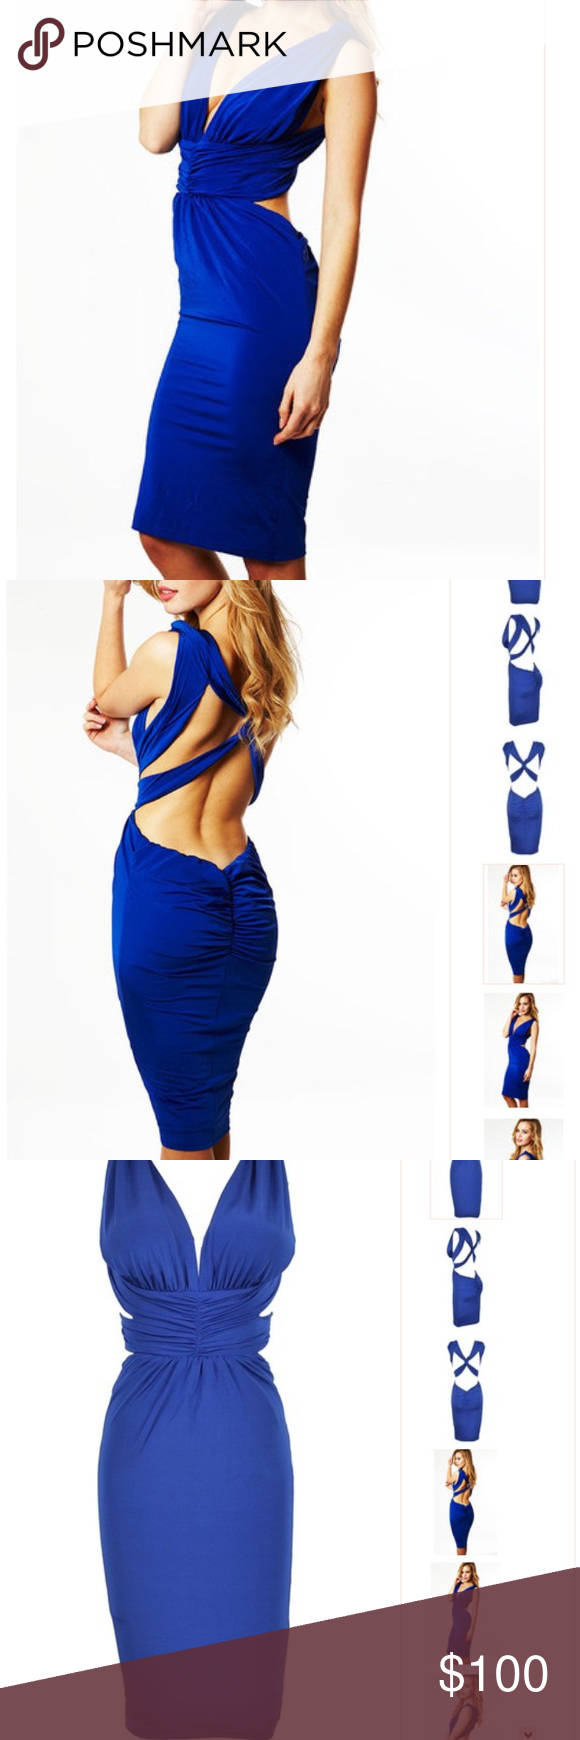 House of CB Chelsea Dress Cobalt Blue Backless Bodycon dress.  Only worn a few times.  I'm about a 4/6 so not sure if I ordered the S or M. Celeb Boutique Dresses Backless